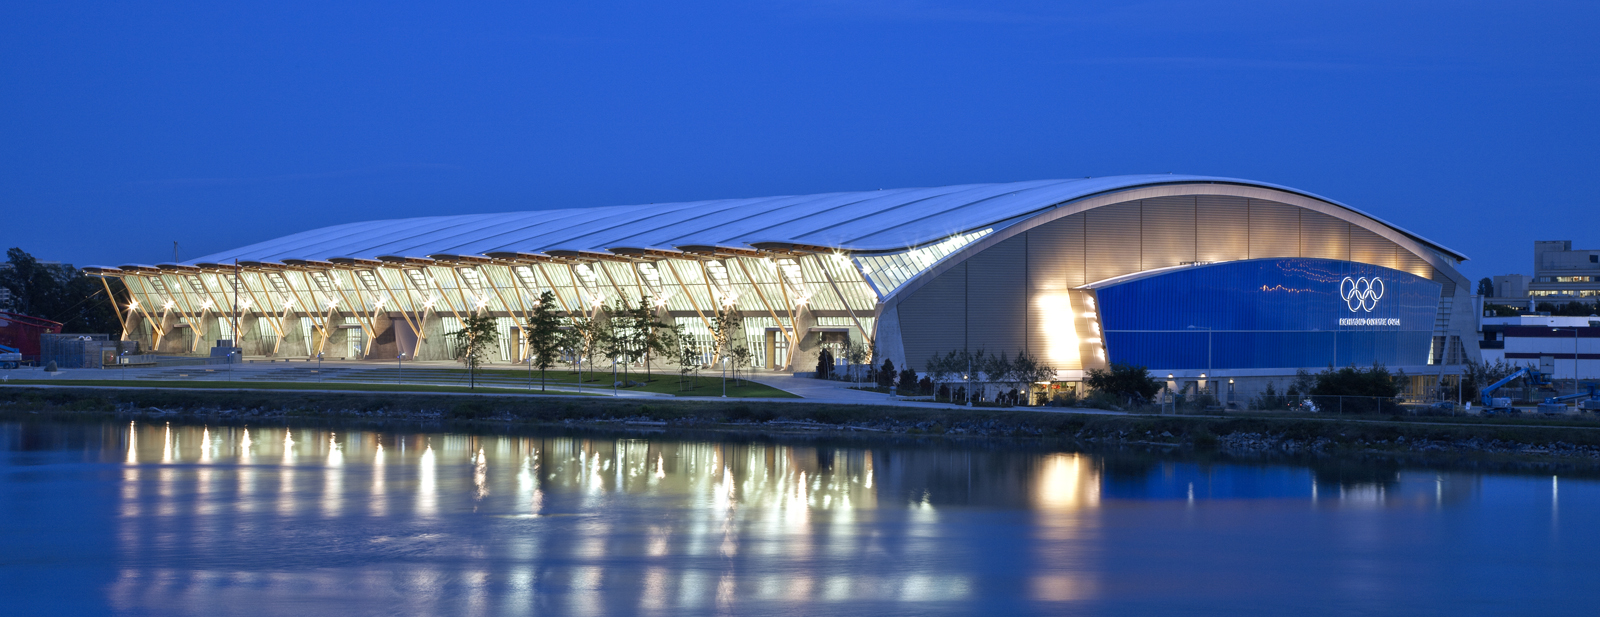 Oval chicago structure richmond olympic oval cannondesign